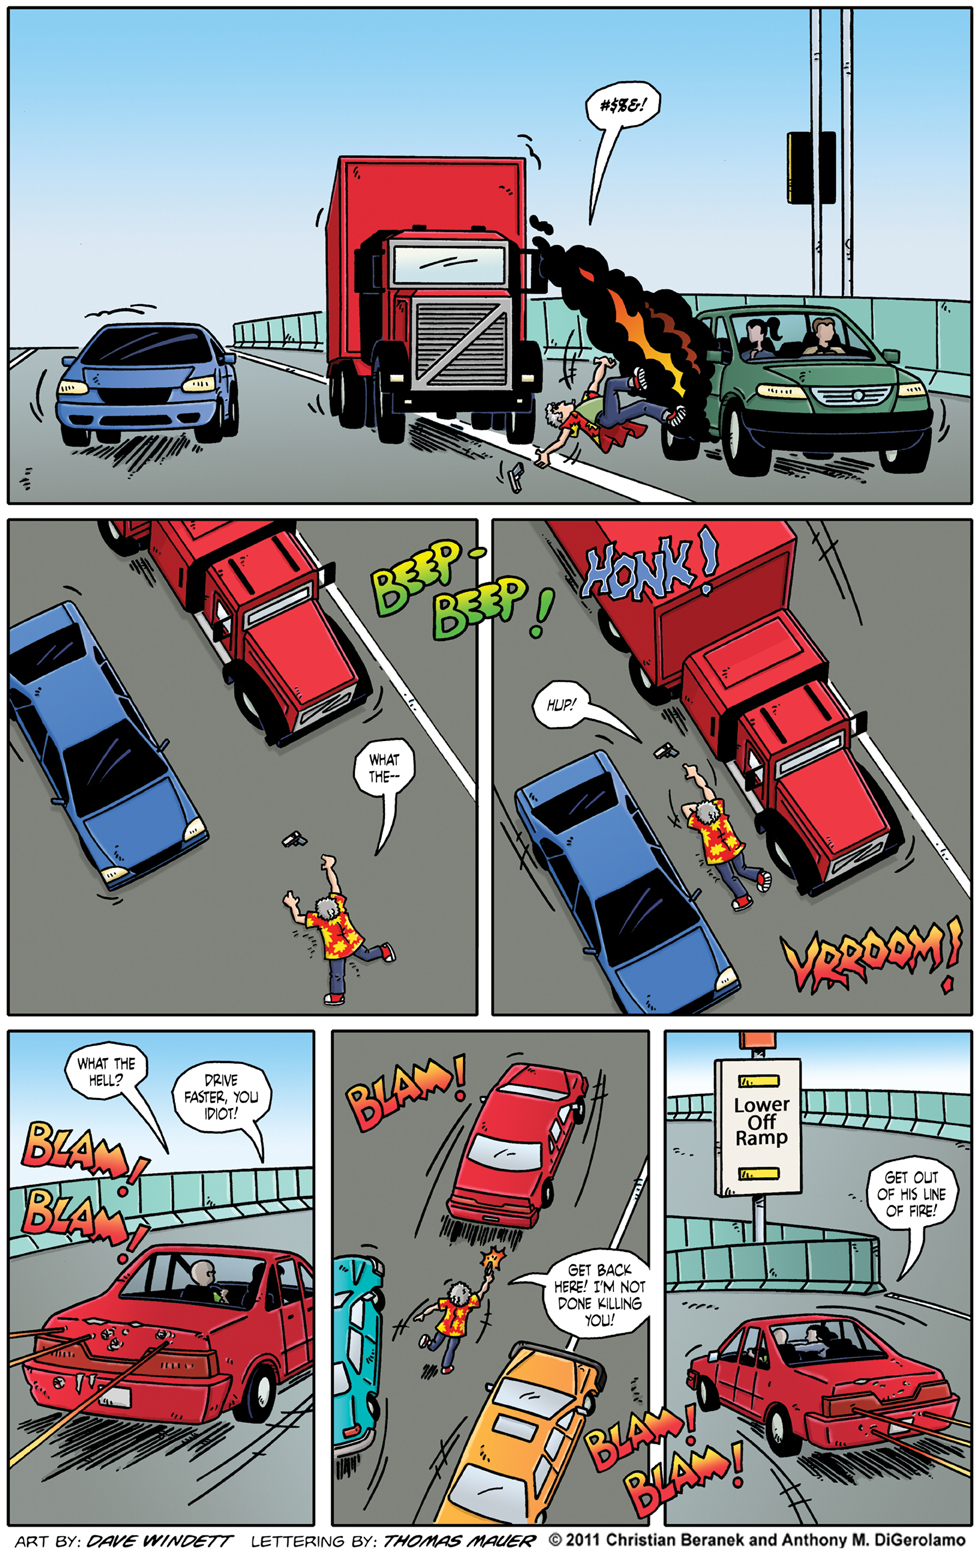 Comic Book Mafia #48:  Beating the Traffic